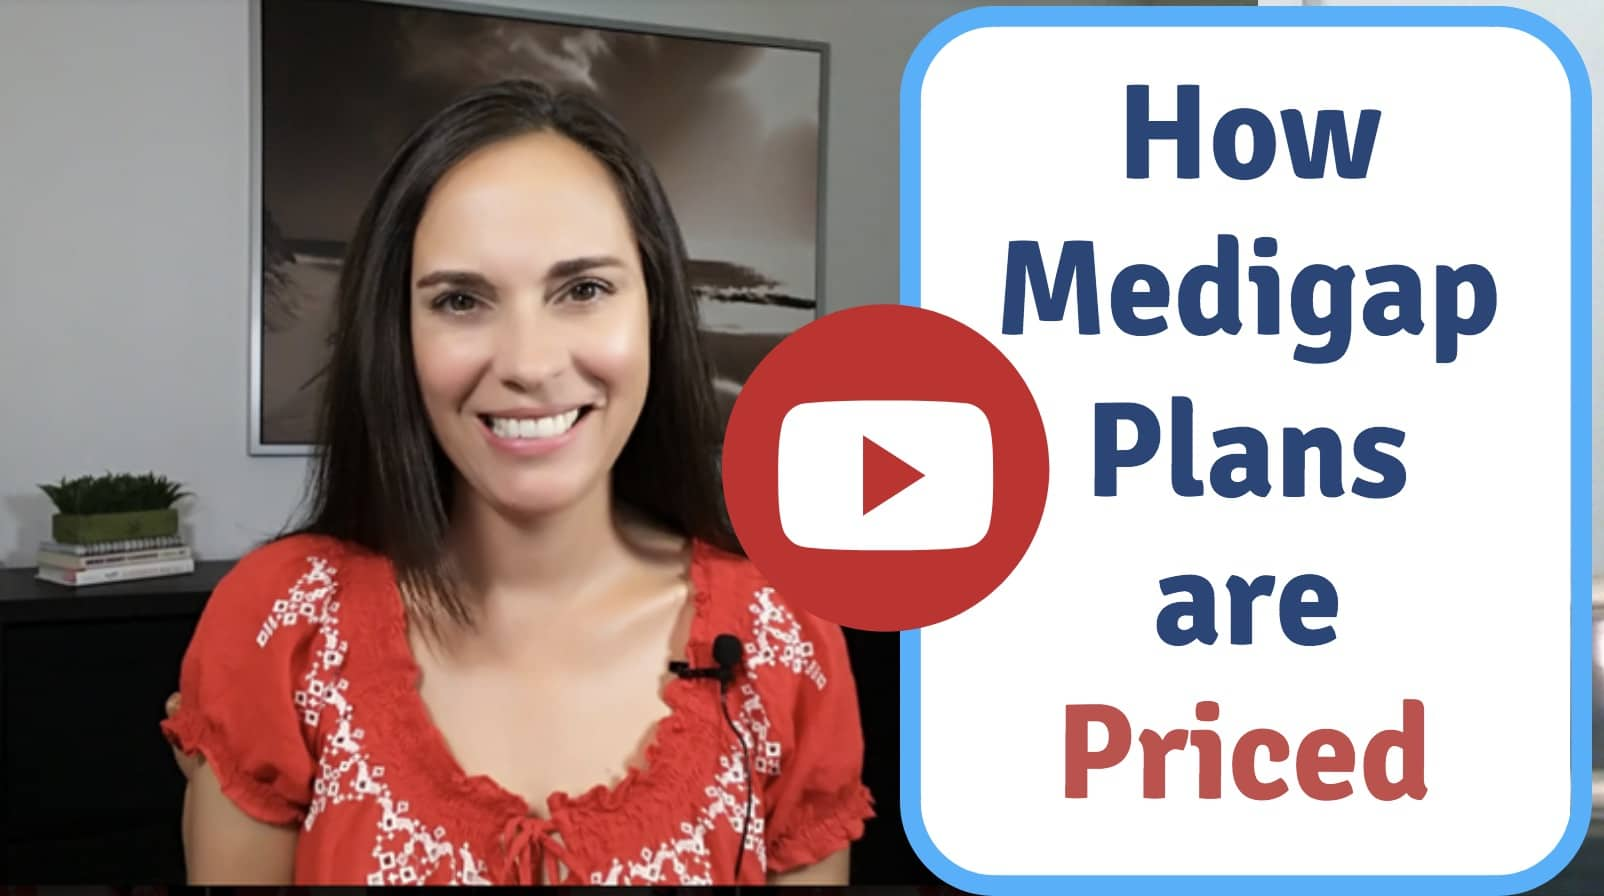 How Do Companies Price Medigap Plans?